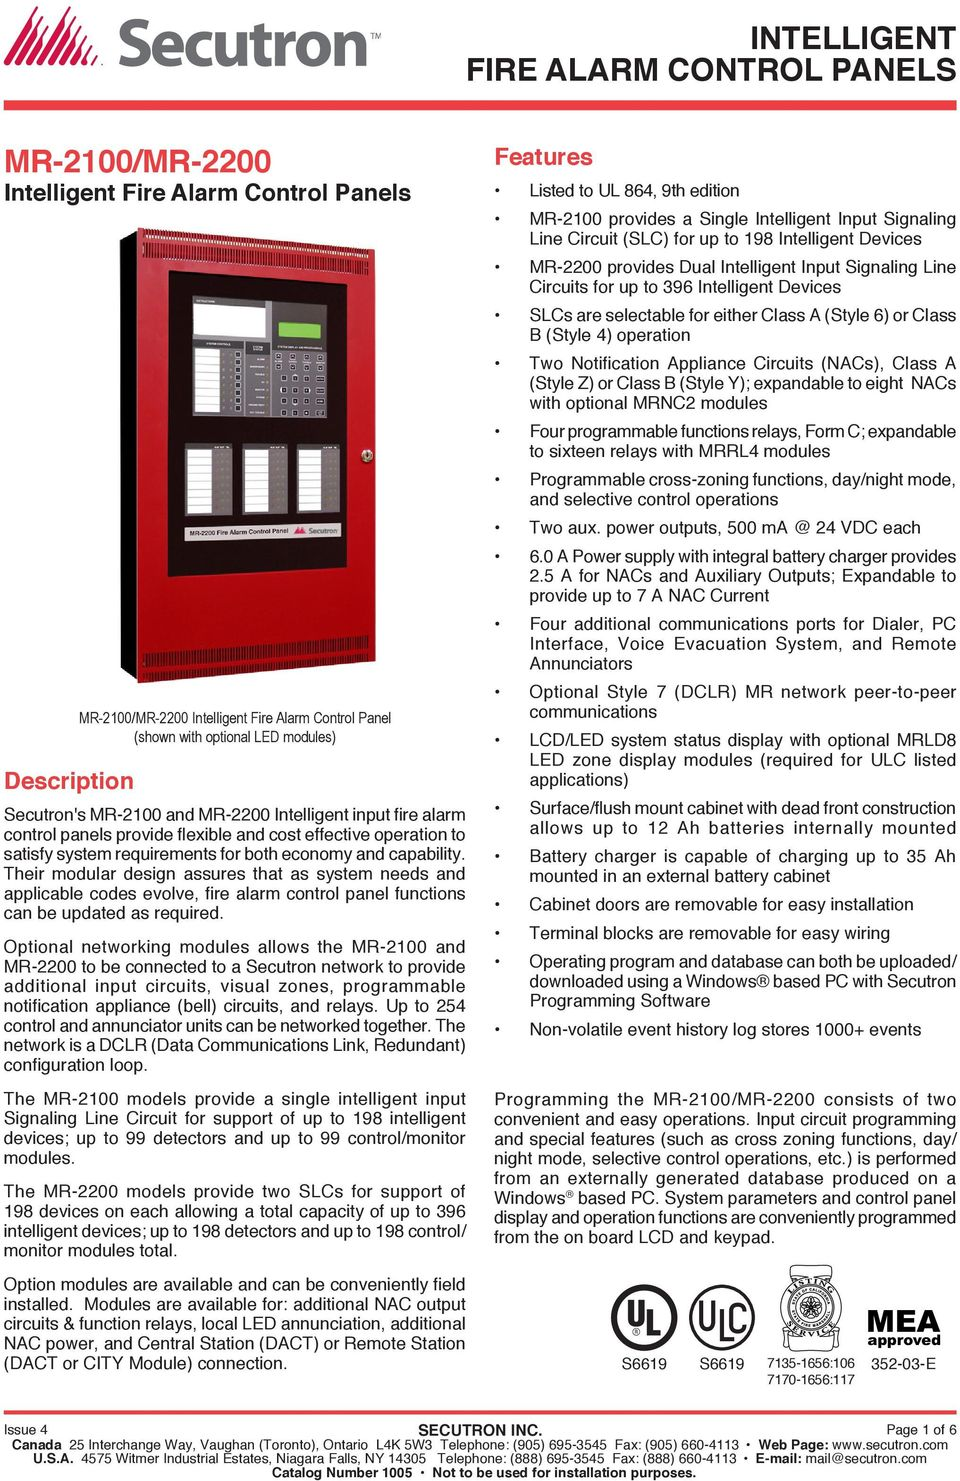 Their modular design assures that as system needs and applicable codes evolve, fire alarm control panel functions can be updated as required.